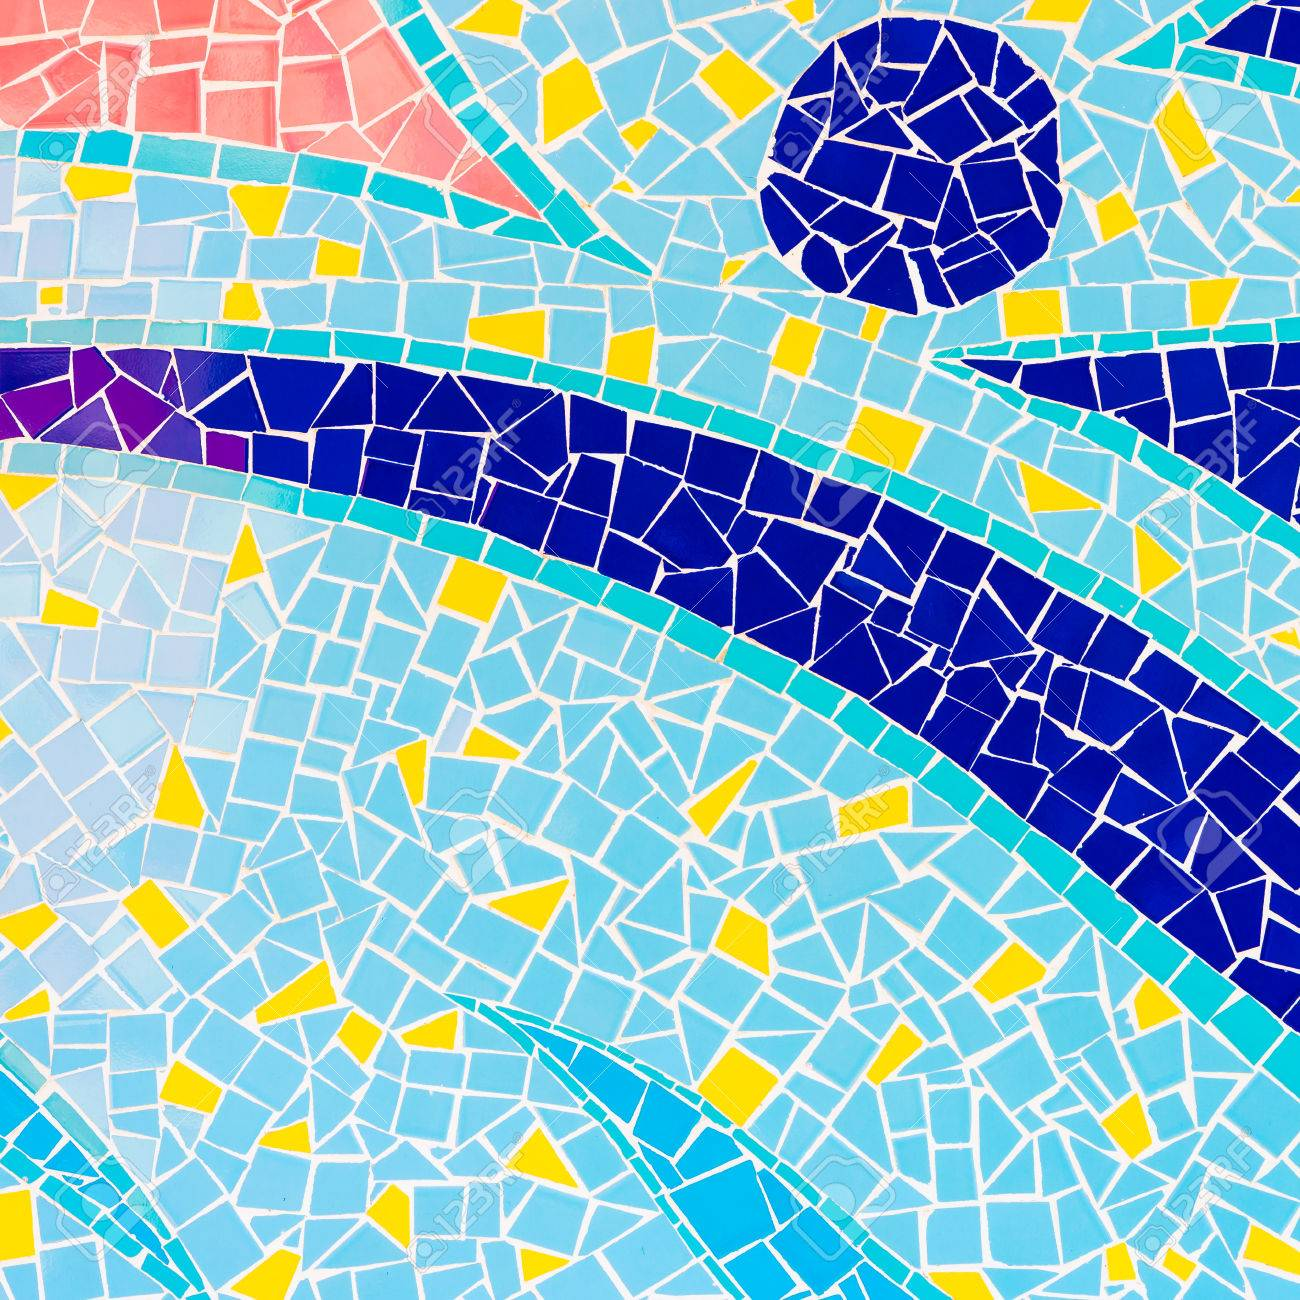 Colorful Tiles Textures Background Stock Photo, Picture And Royalty ...